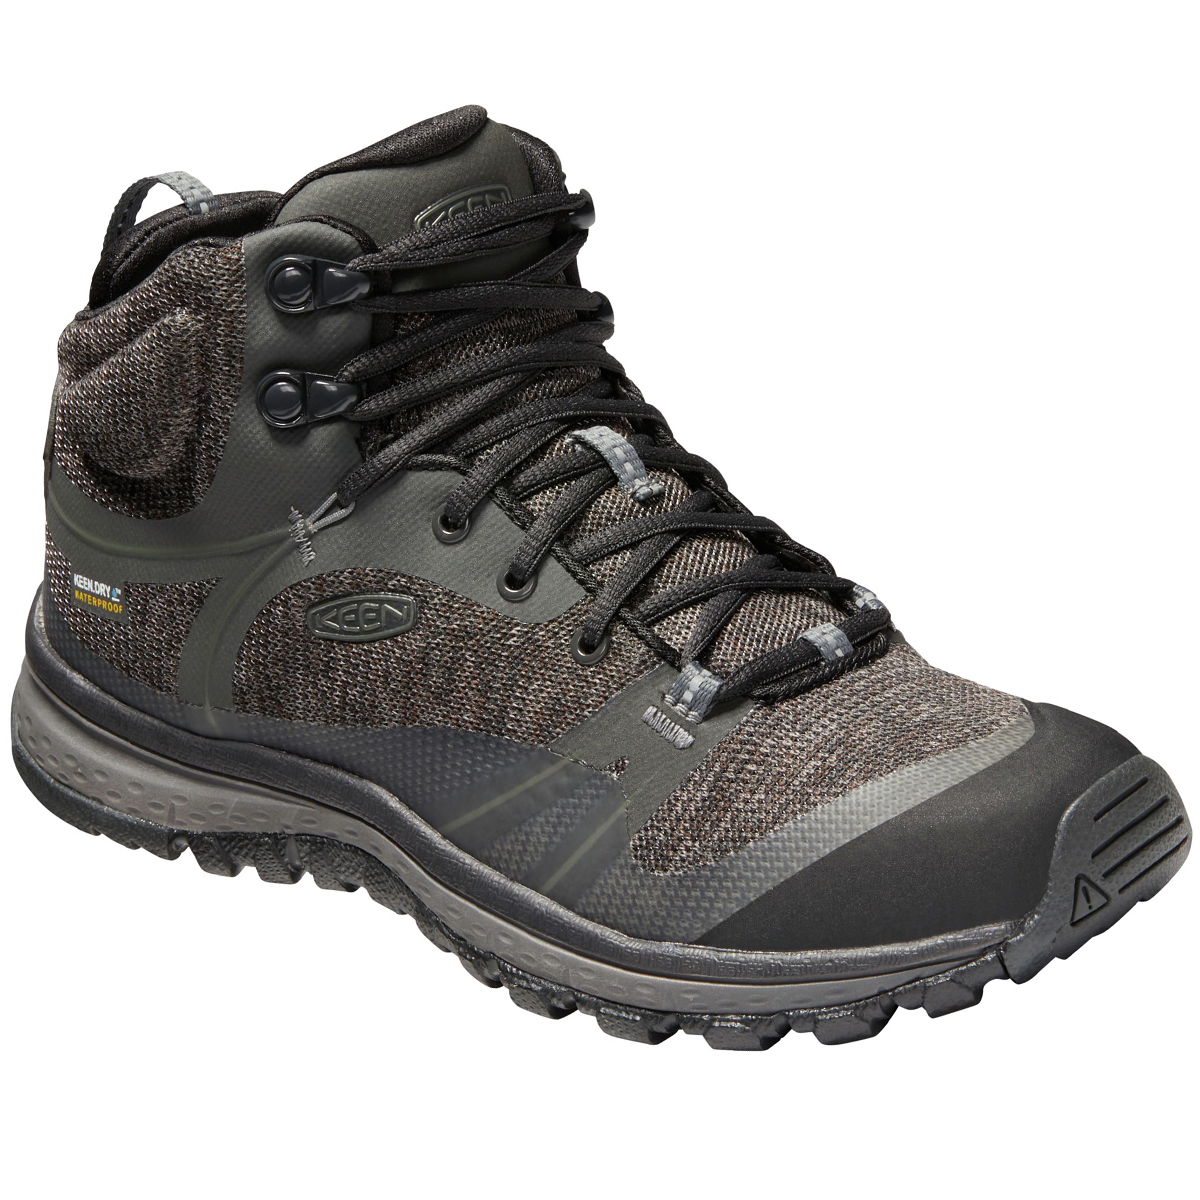 Keen Women's Terradora Mid Waterproof Hiking Shoes - Black, 9